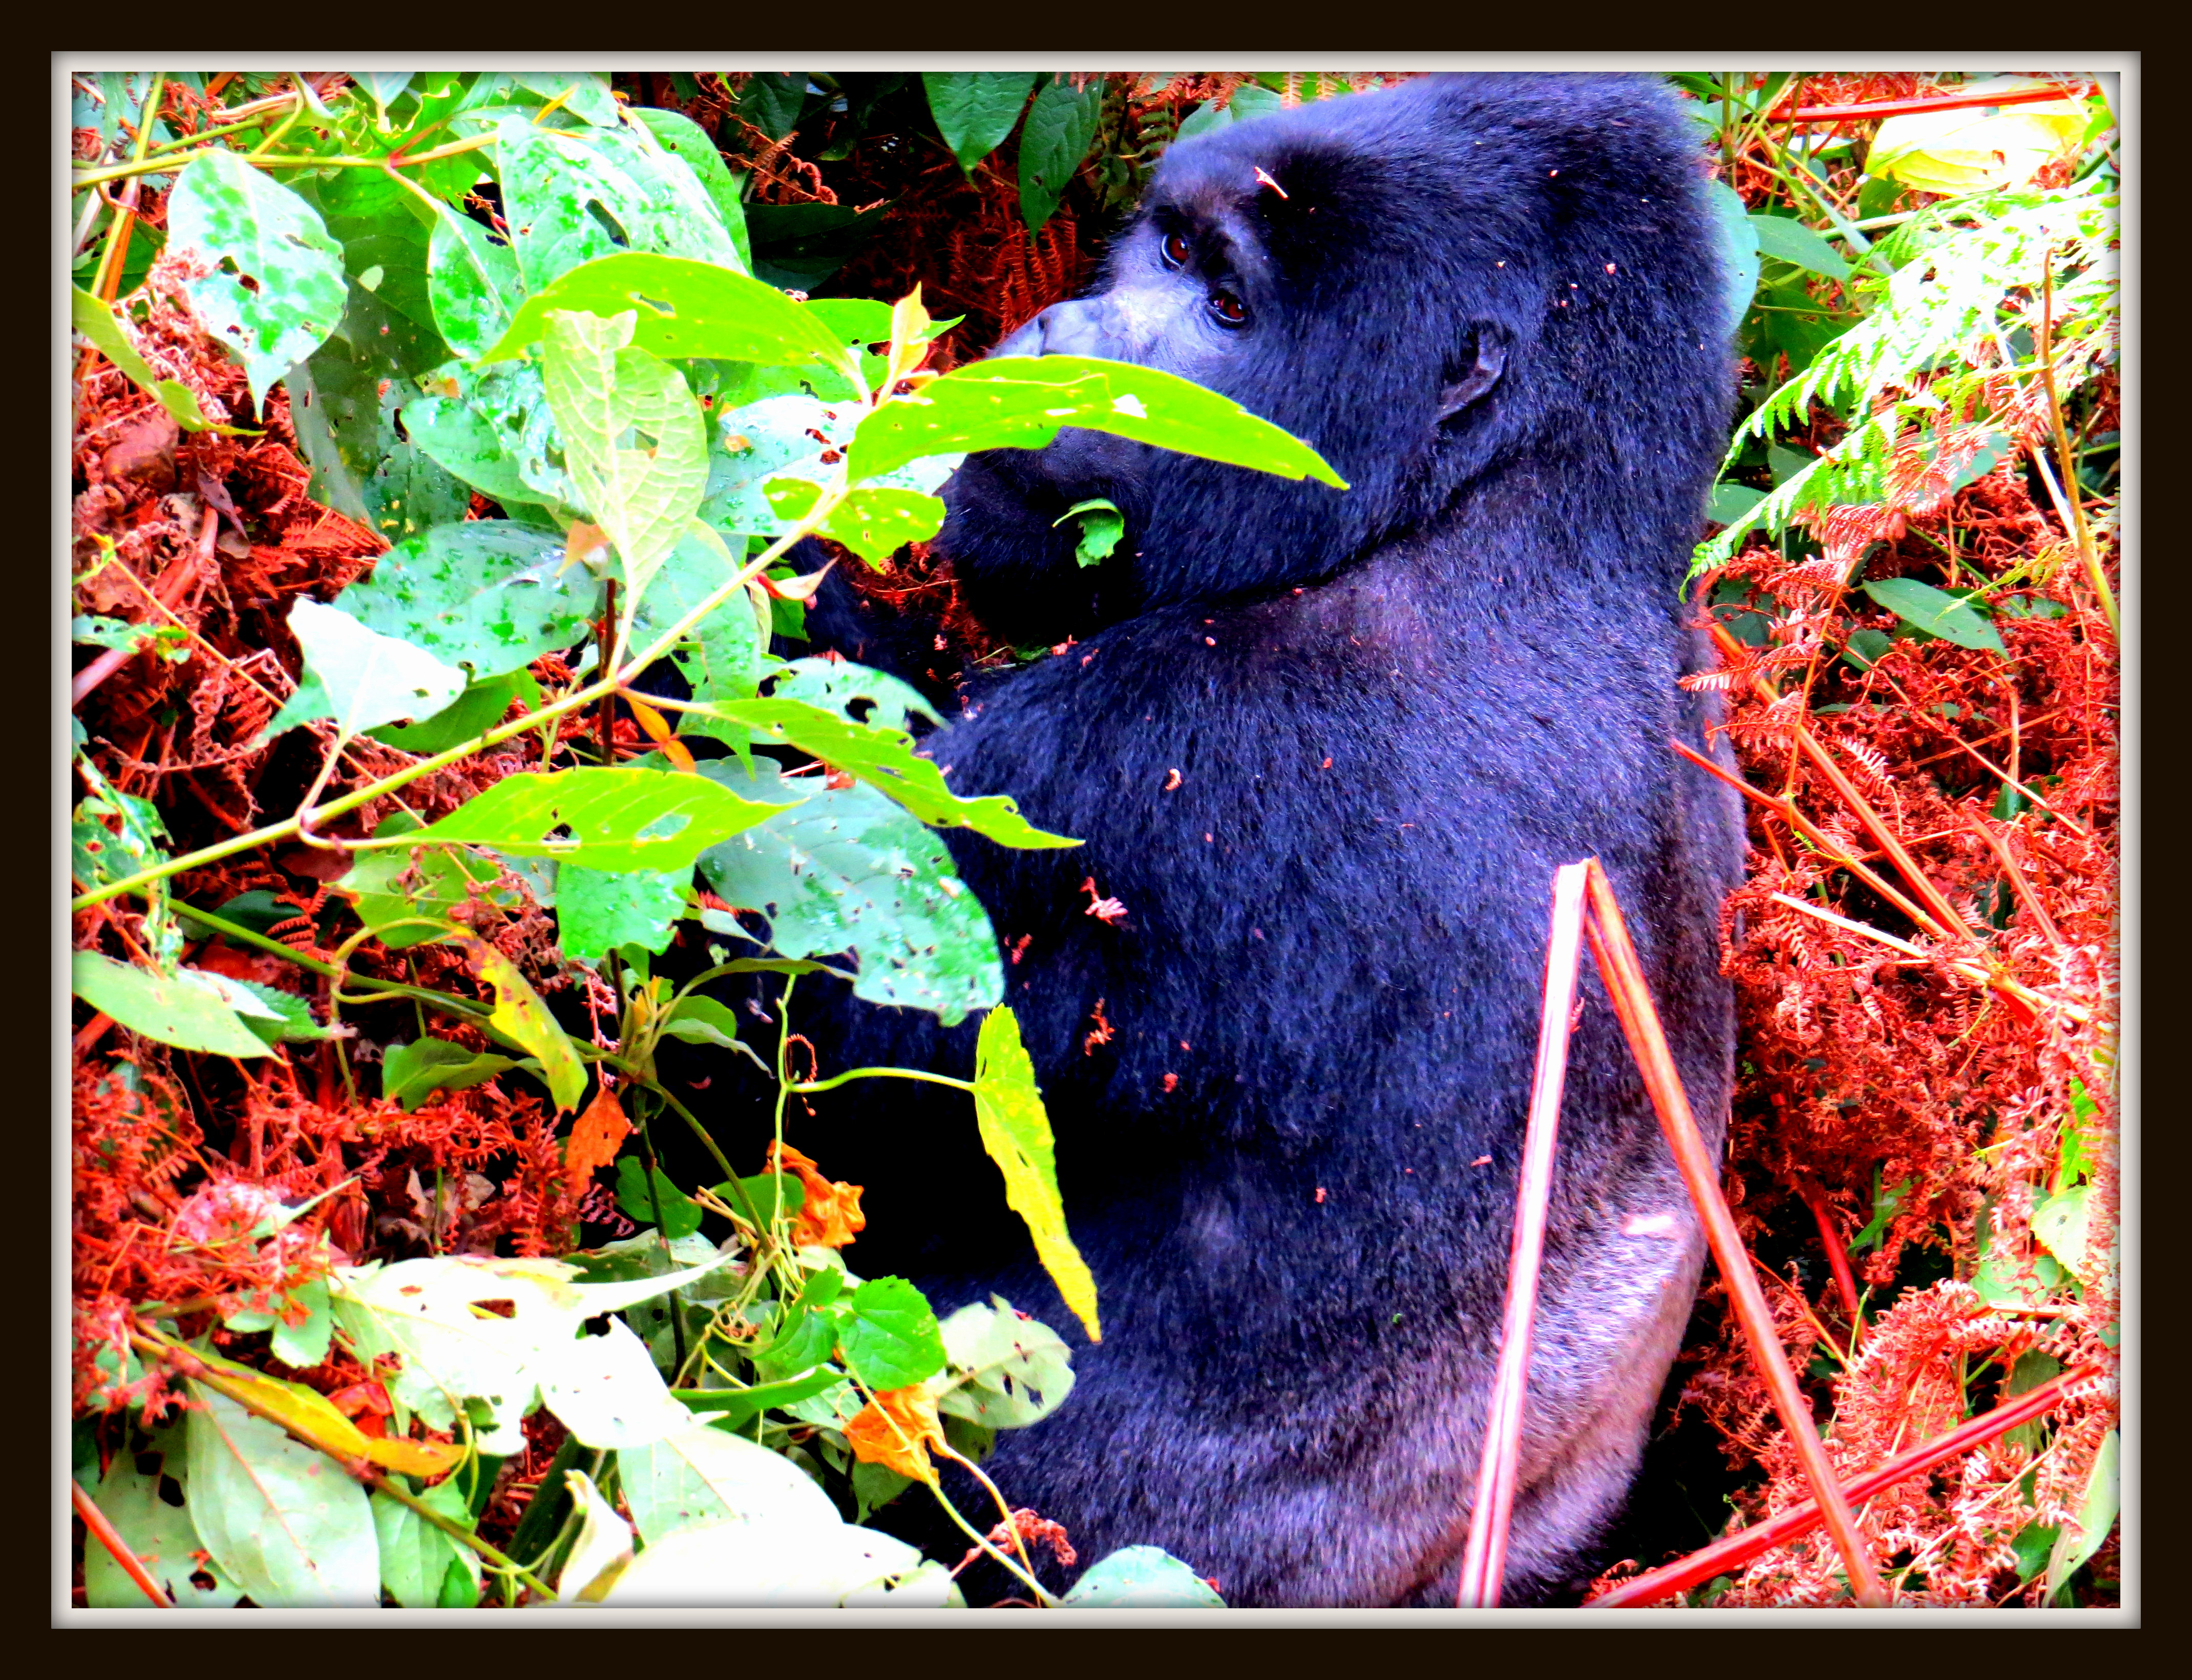 Silver Back Gorilla in Bwindi Forest